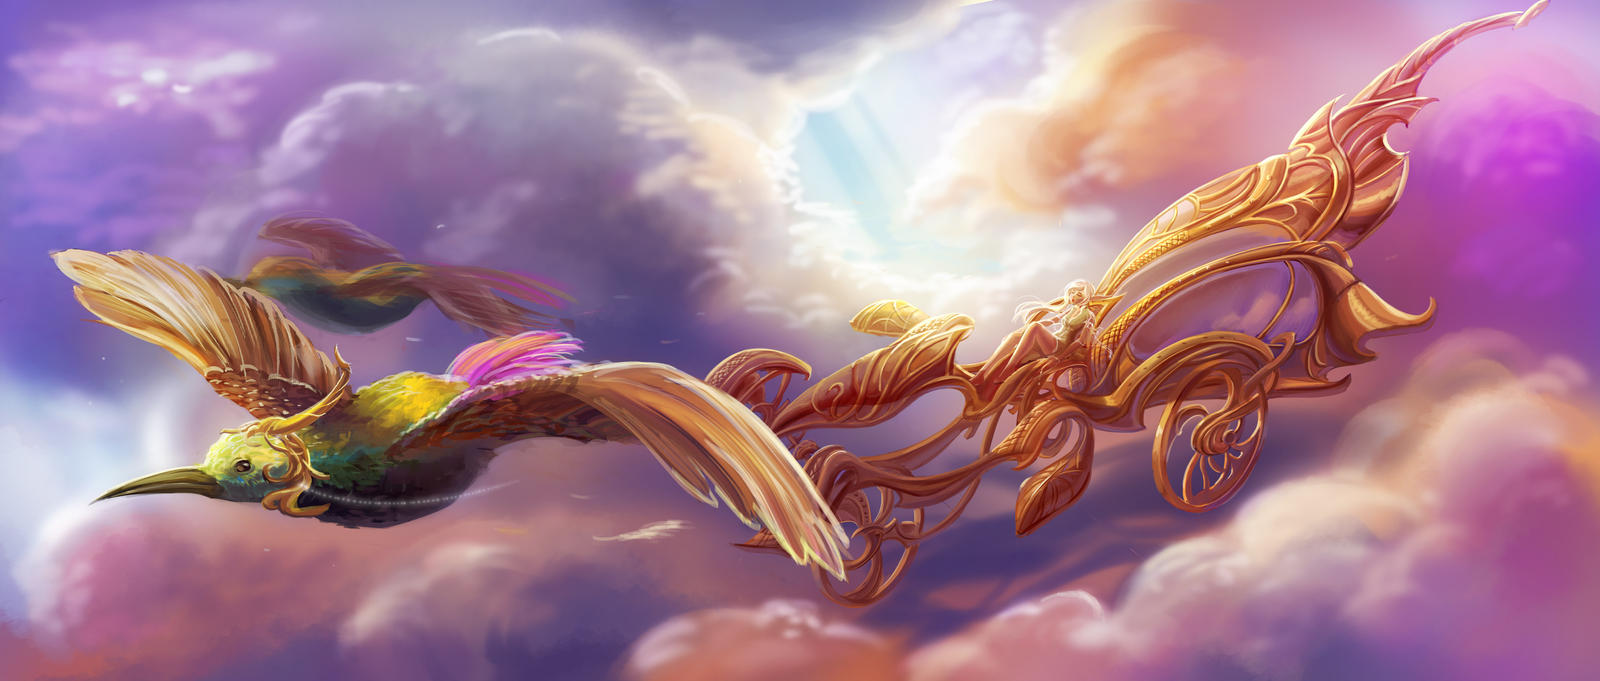 a nap in the sky by yangtianli